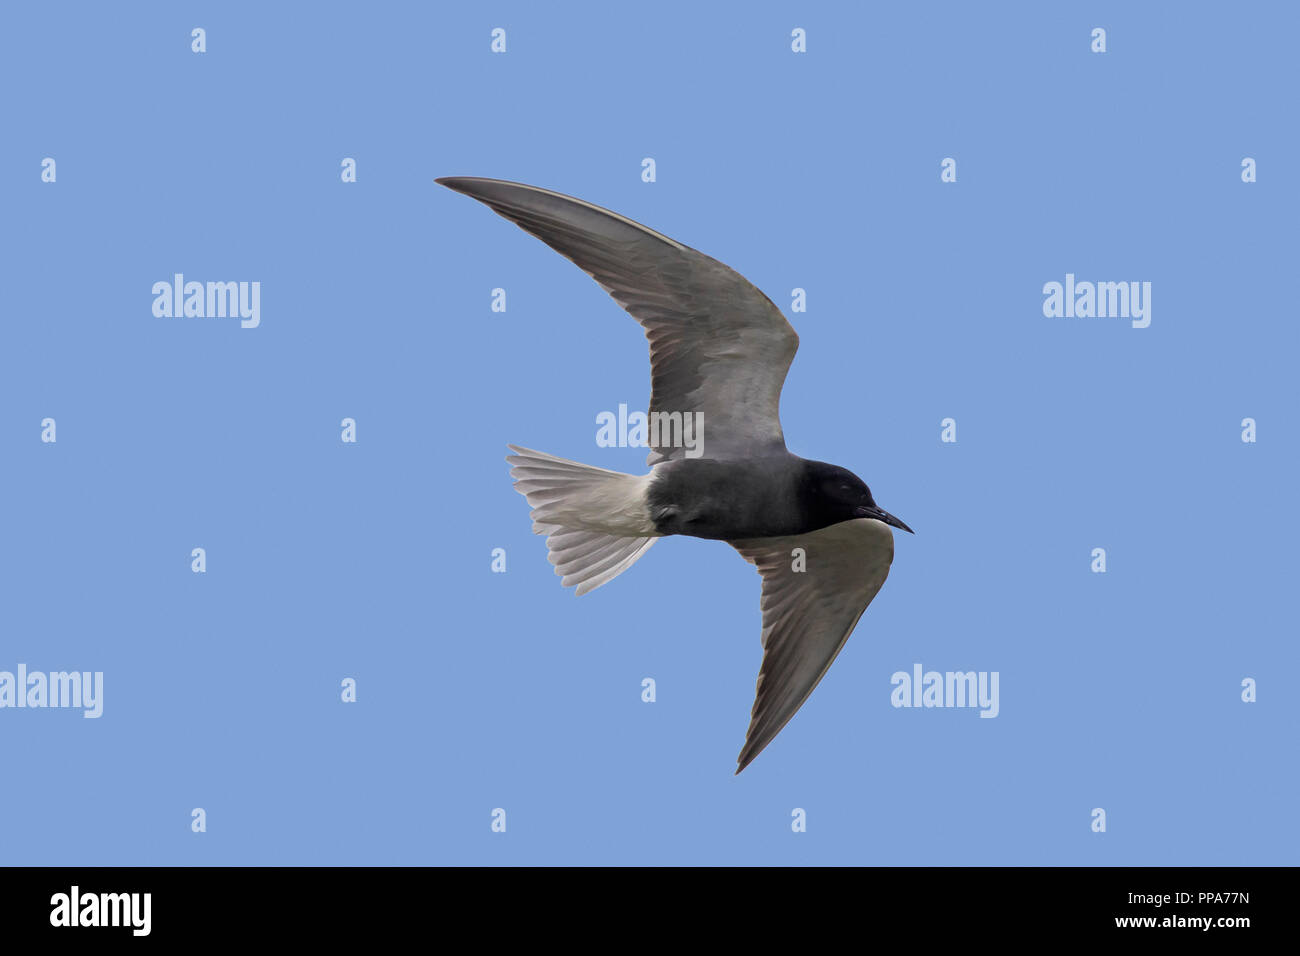 Black tern (Chlidonias niger) in breeding plumage in flight against blue sky - Stock Image